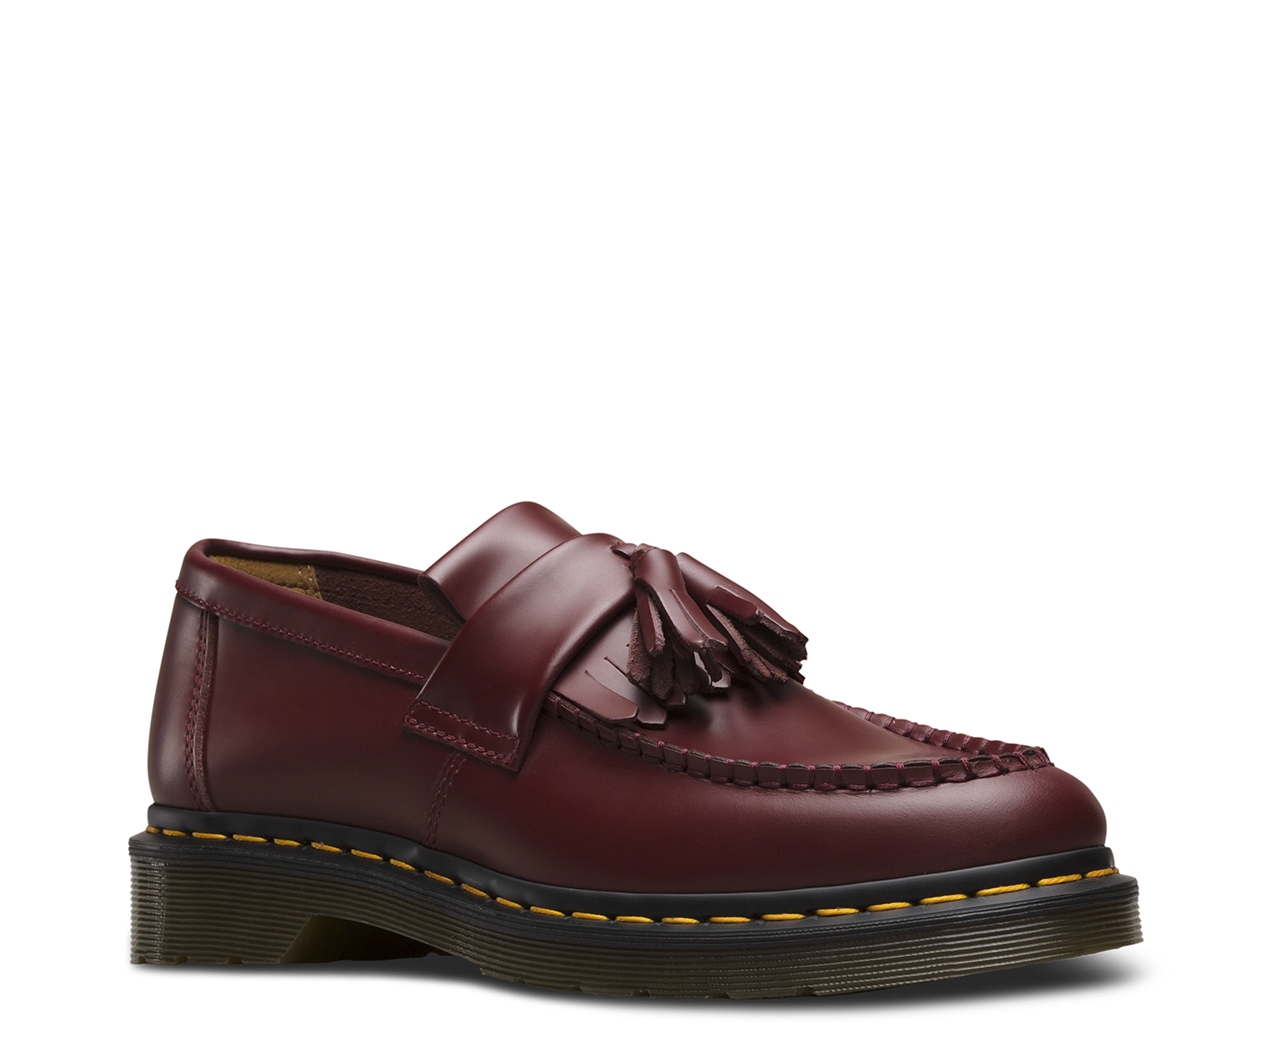 Men's Shoes | Official Dr. Martens Store